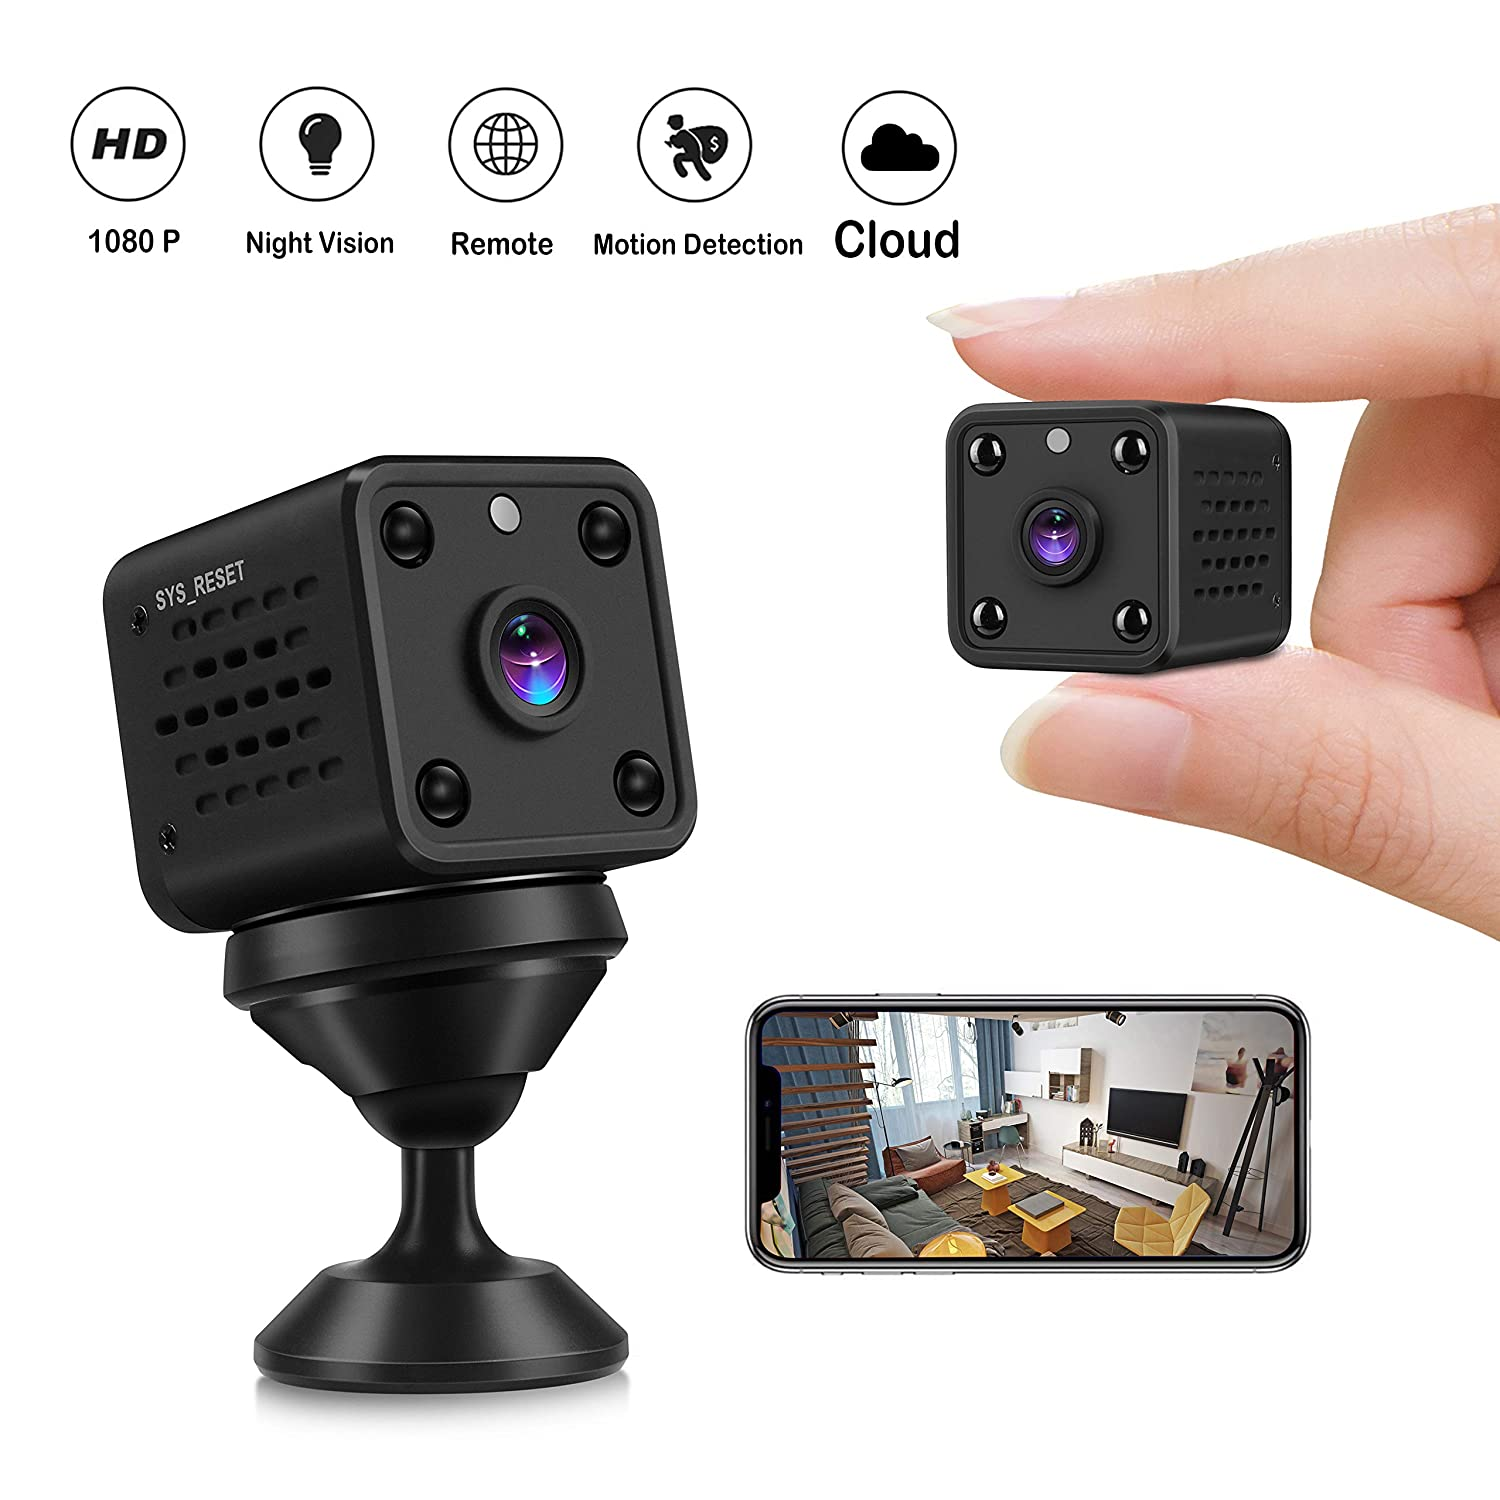 Mini Camera – CUSFLYX Tiny Portable 1080P WiFi Full HD Nanny Pet Office Sports Garage Home Surveillance Camera Auto IR Night Vision 150 Wide Angle Motion Detection Remote Video for Android and iOS